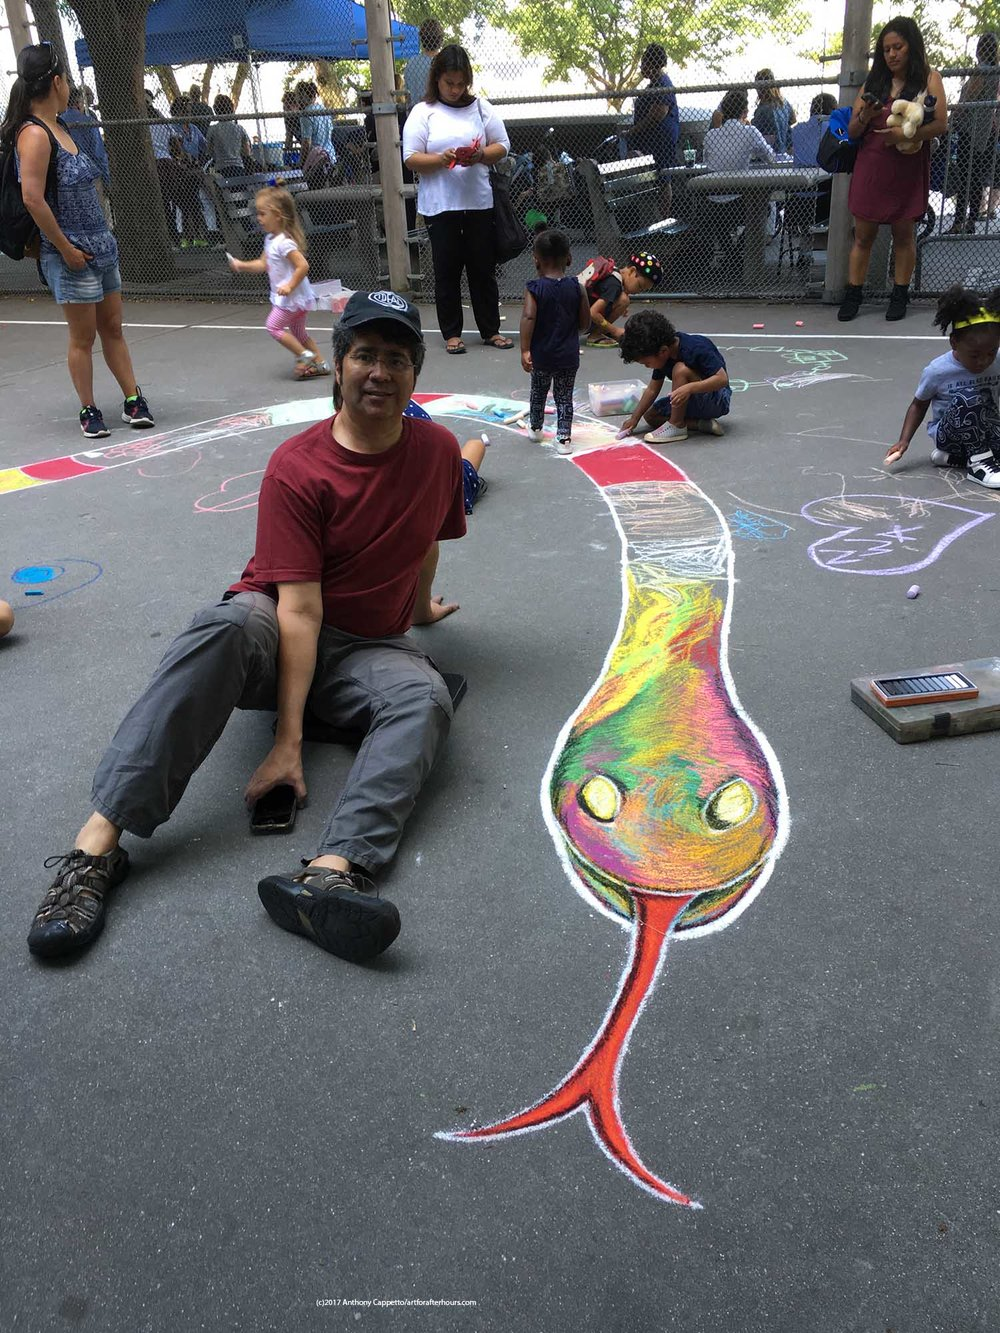 Anthony Cappetto posing for a picture with the head of the snake just before the kids descended upon the pavement which of course was the purpose of the pavement portion for this project!